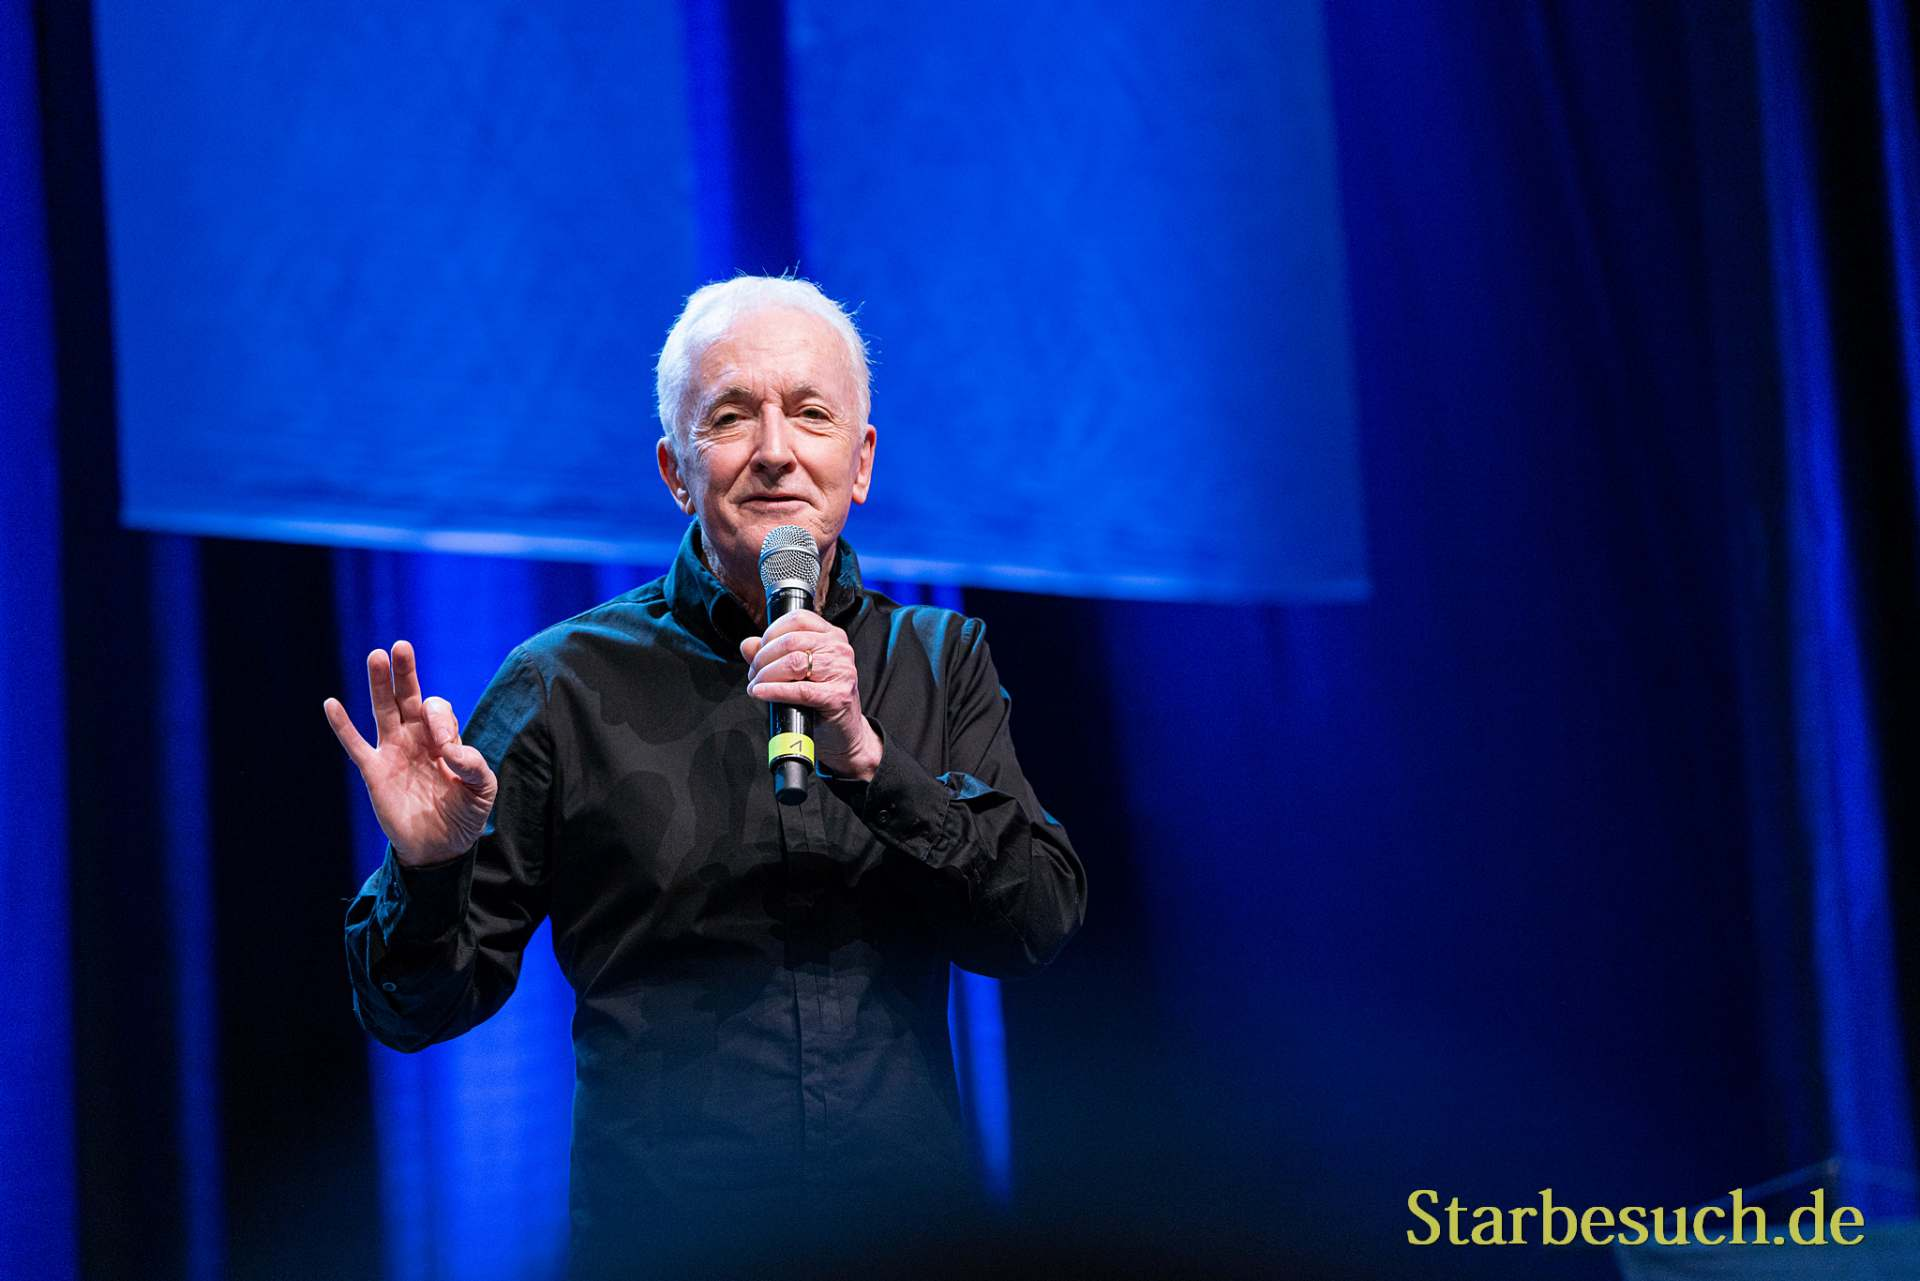 Bonn, Germany - June 8 2019: Anthony Daniels (*1946, English actor - C-3PO in Star Wars) talks about his experiences in Star Wars at FedCon 28